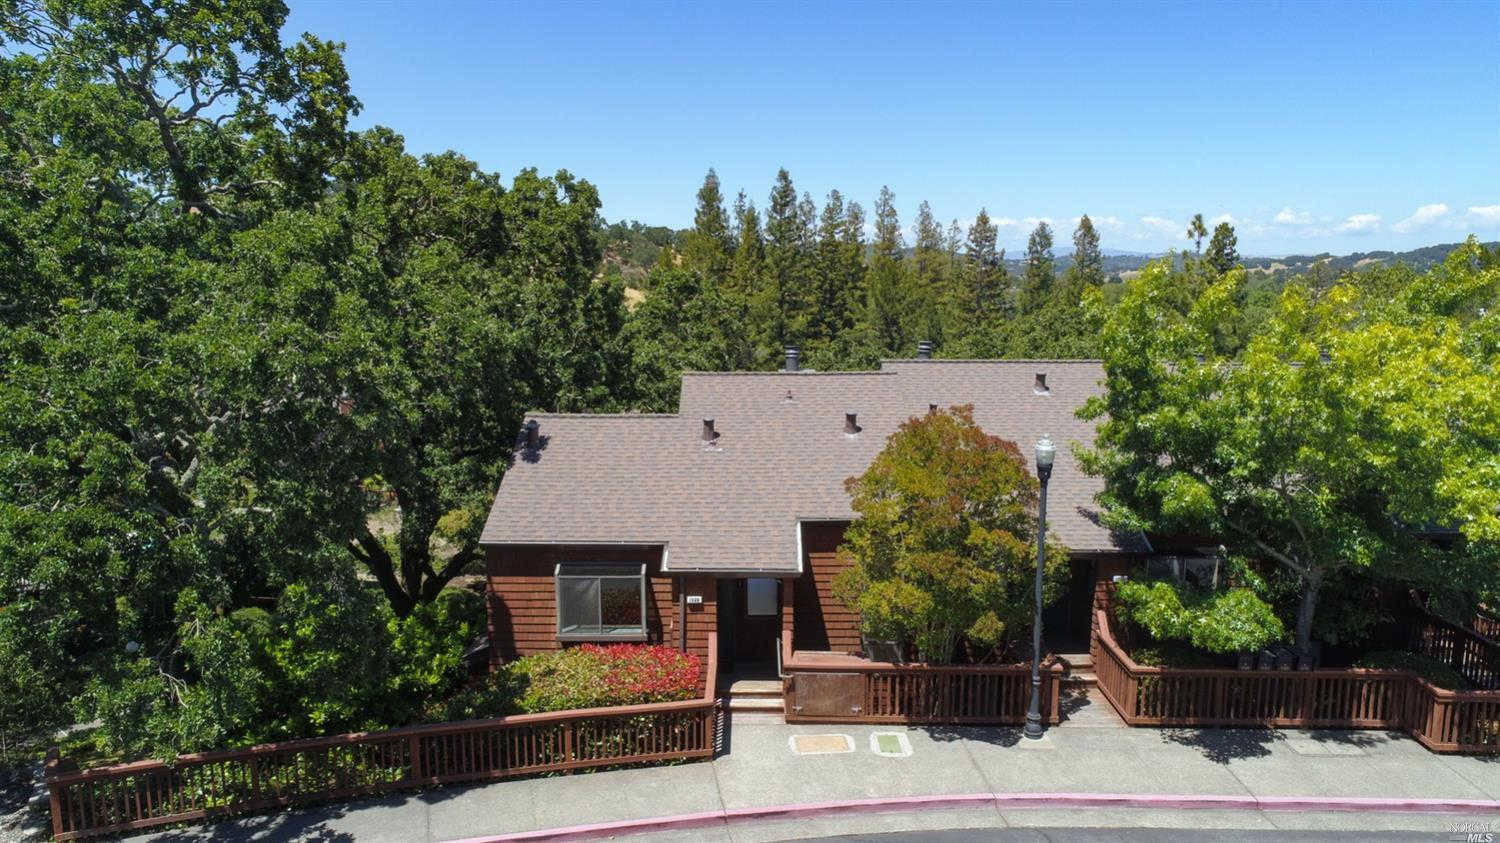 1028 Susan Way, Novato, CA 94947 has an Open House on  Sunday, June 23, 2019 1:00 PM to 4:00 PM